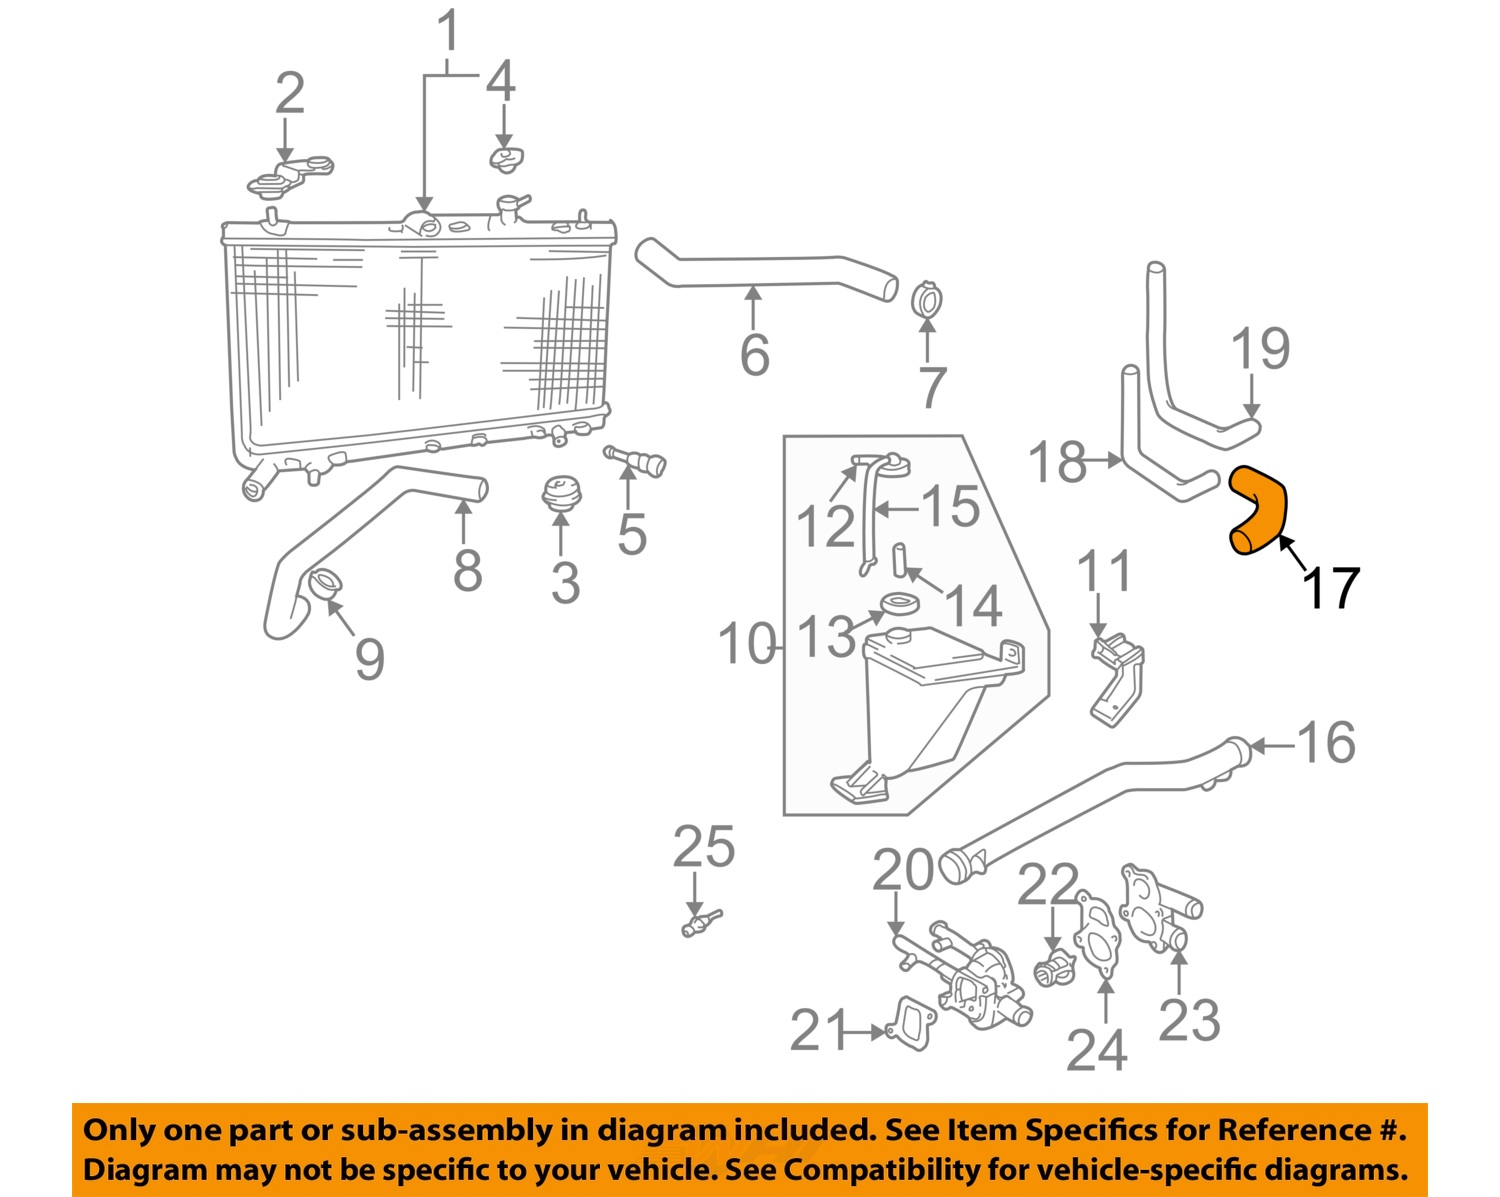 2005 Hyundai Accent Starter Wiring Schematics Diagrams 2001 Diagram Stereo Auto Location